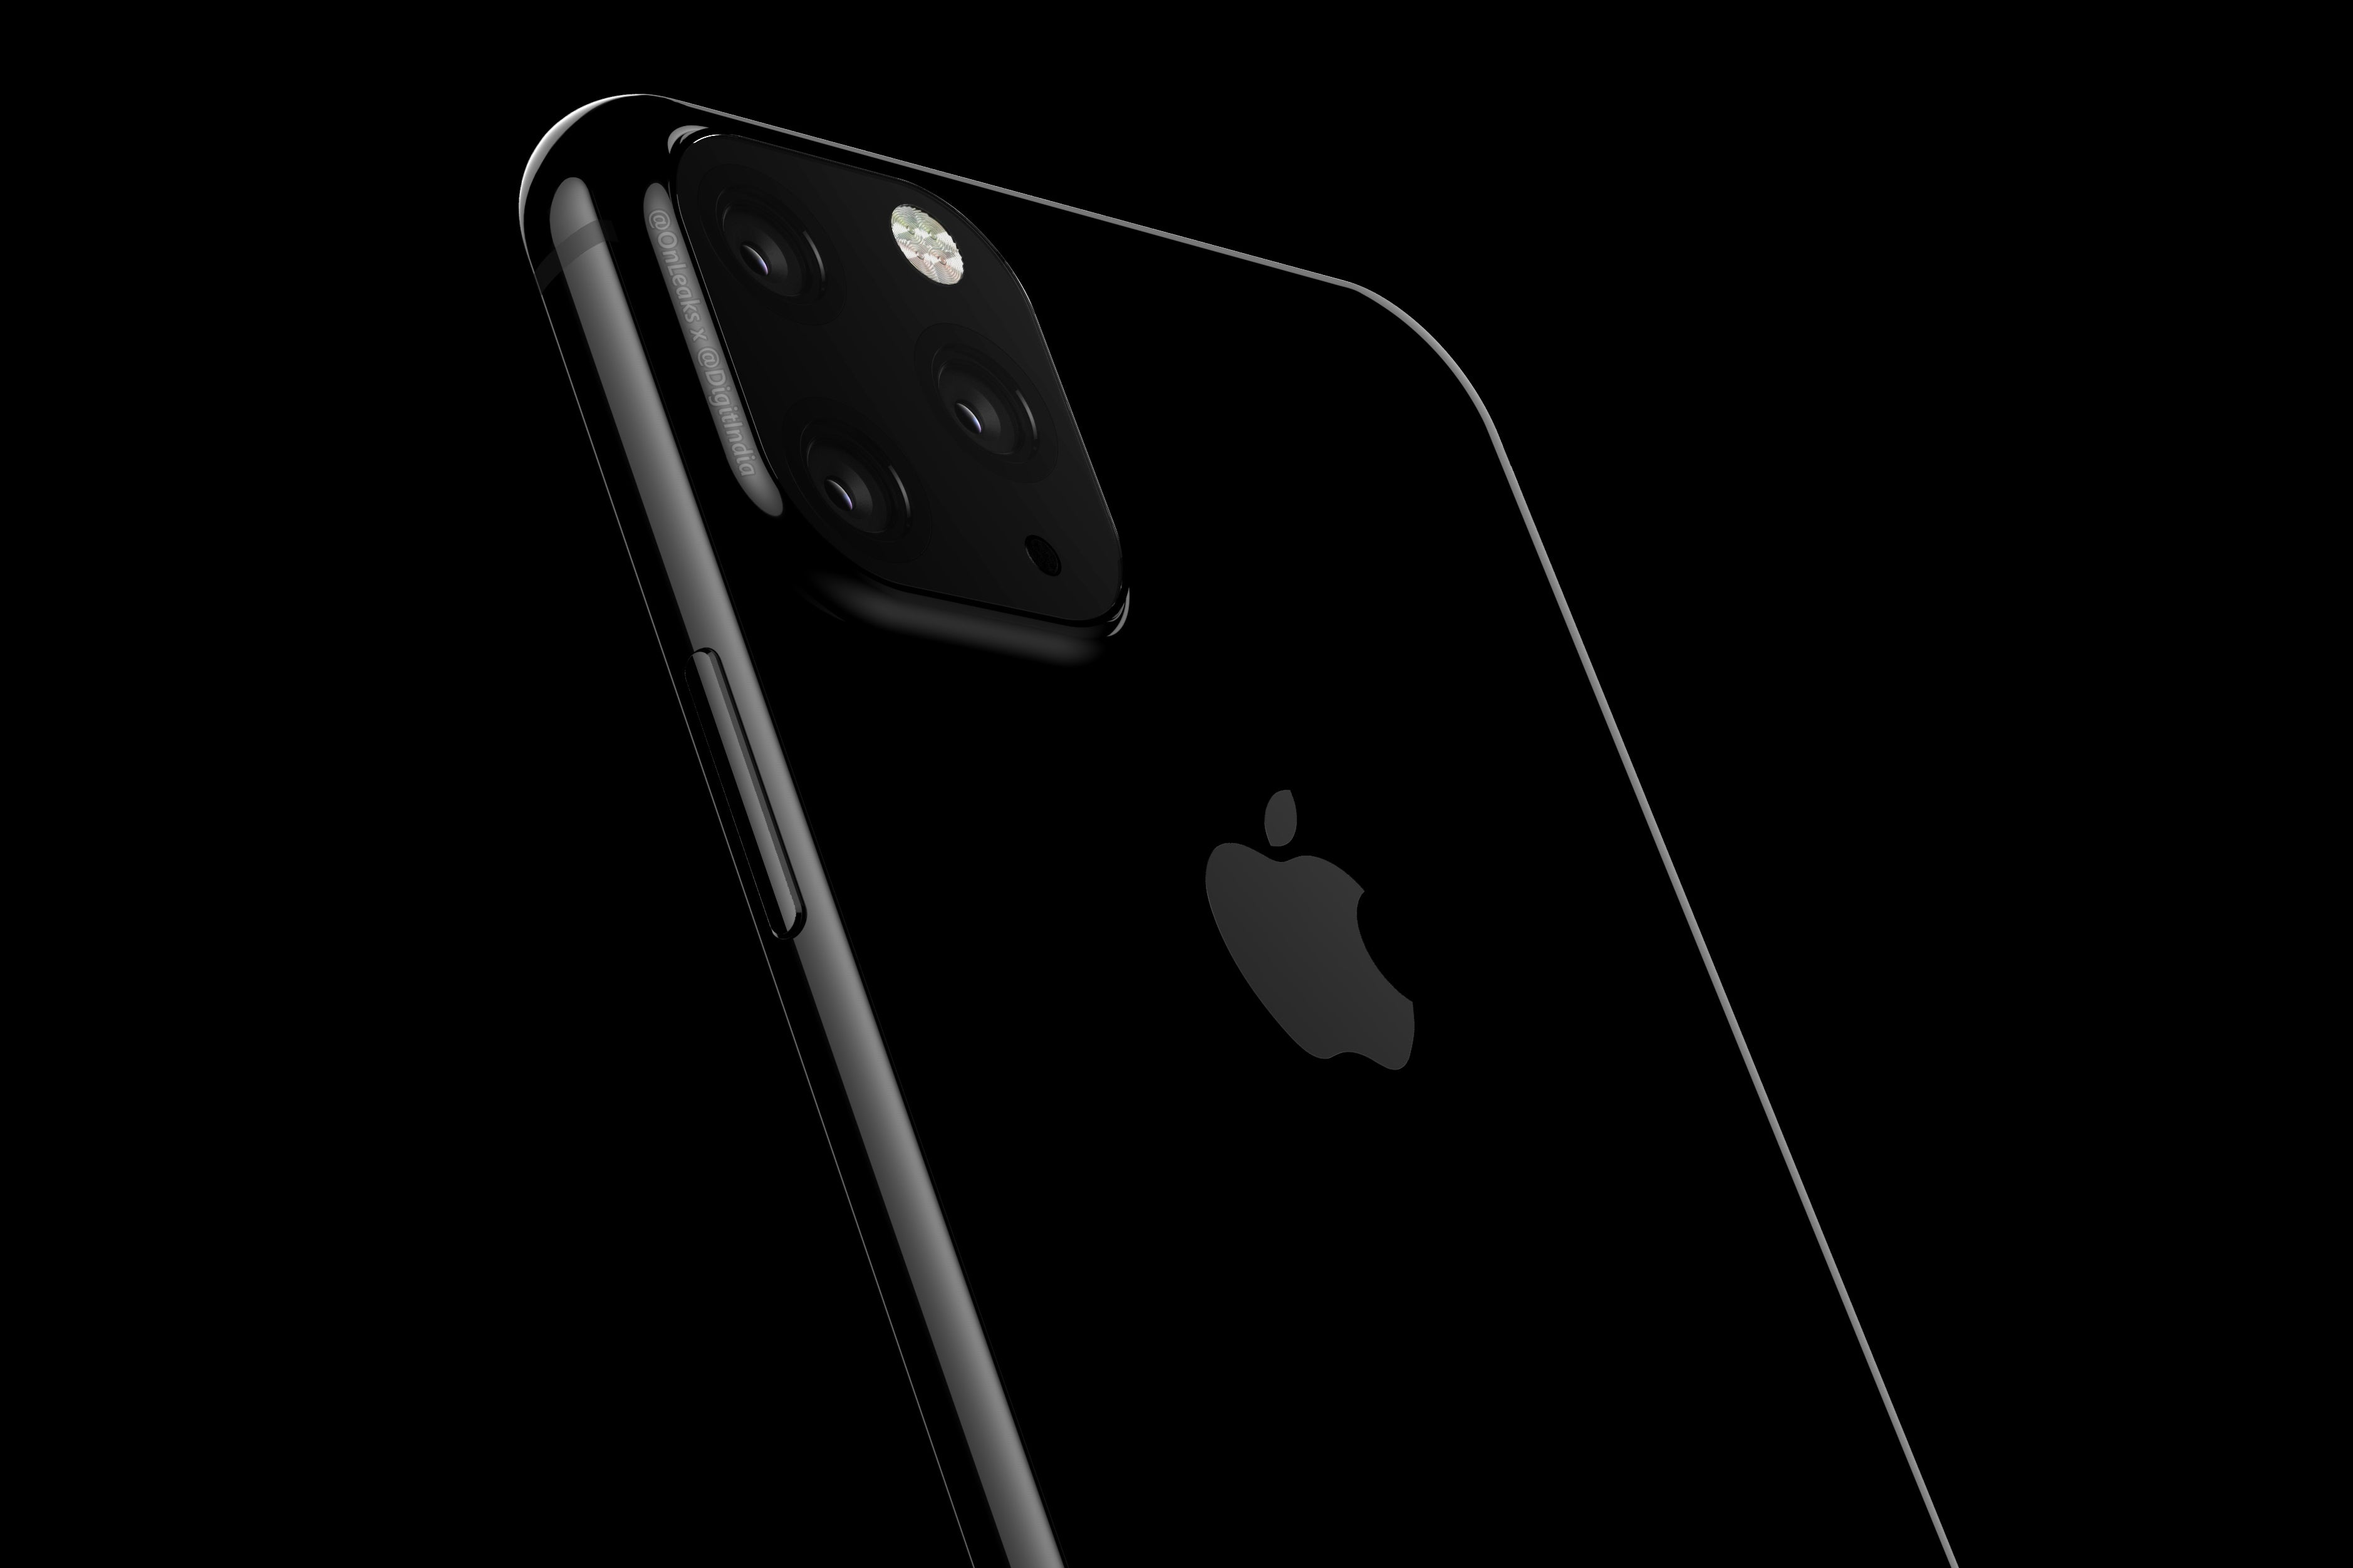 New Iphone Release Date 2019 iPhone XI rumors: Everything you need to know   Macworld